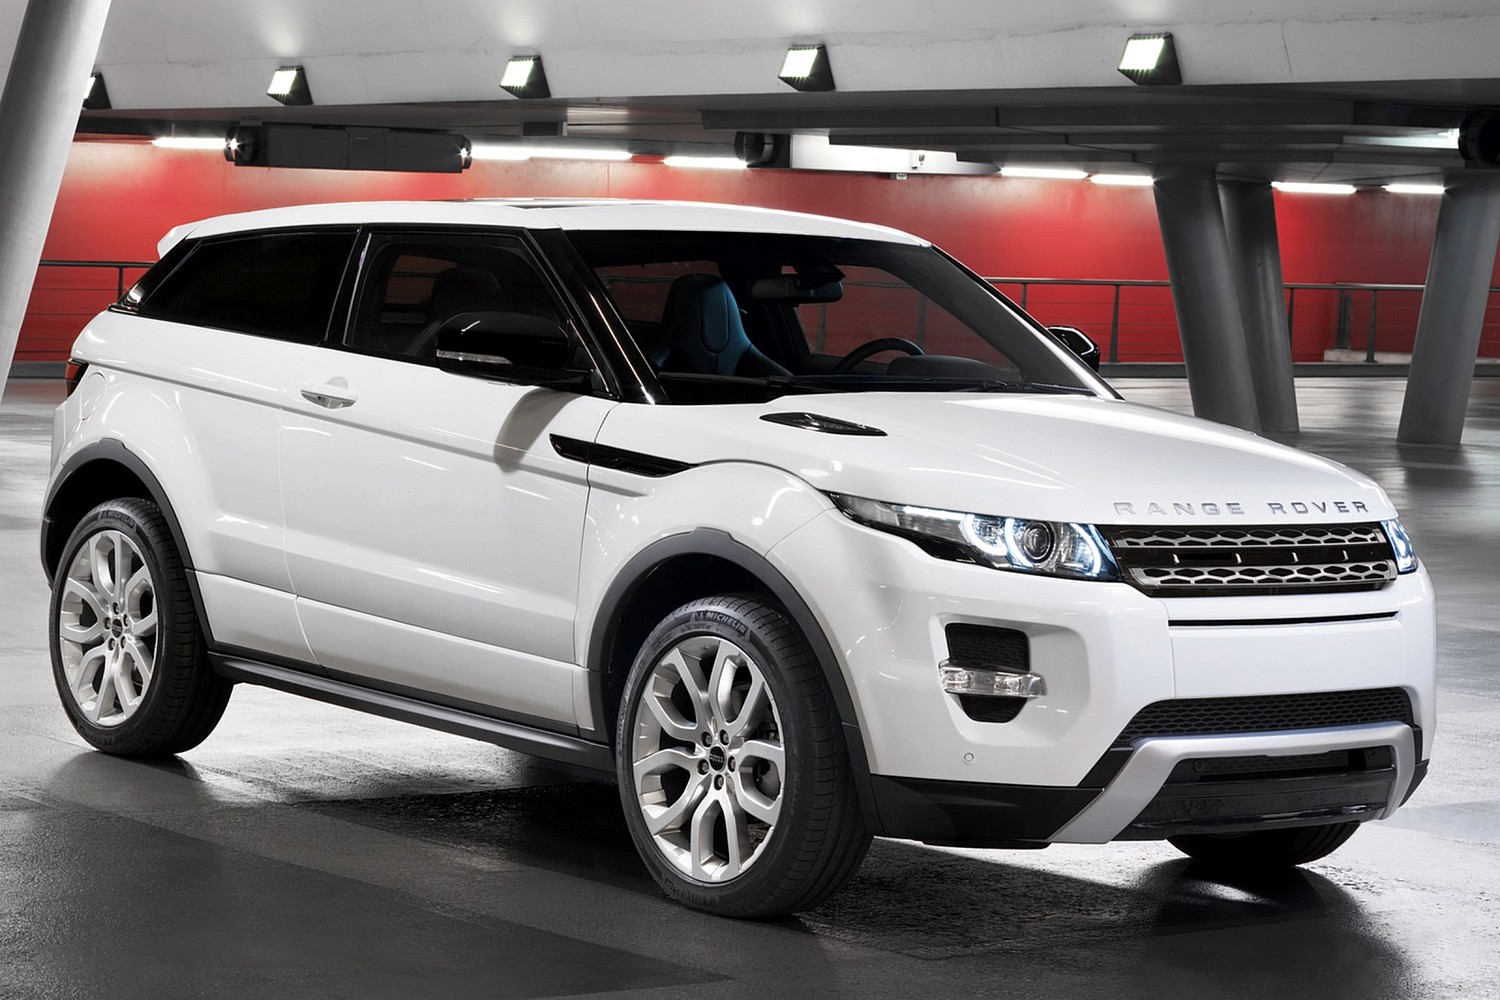 Land Rover Range Rover Evoque Pure Plus 2dr SUV Exterior (2013 model year shown)